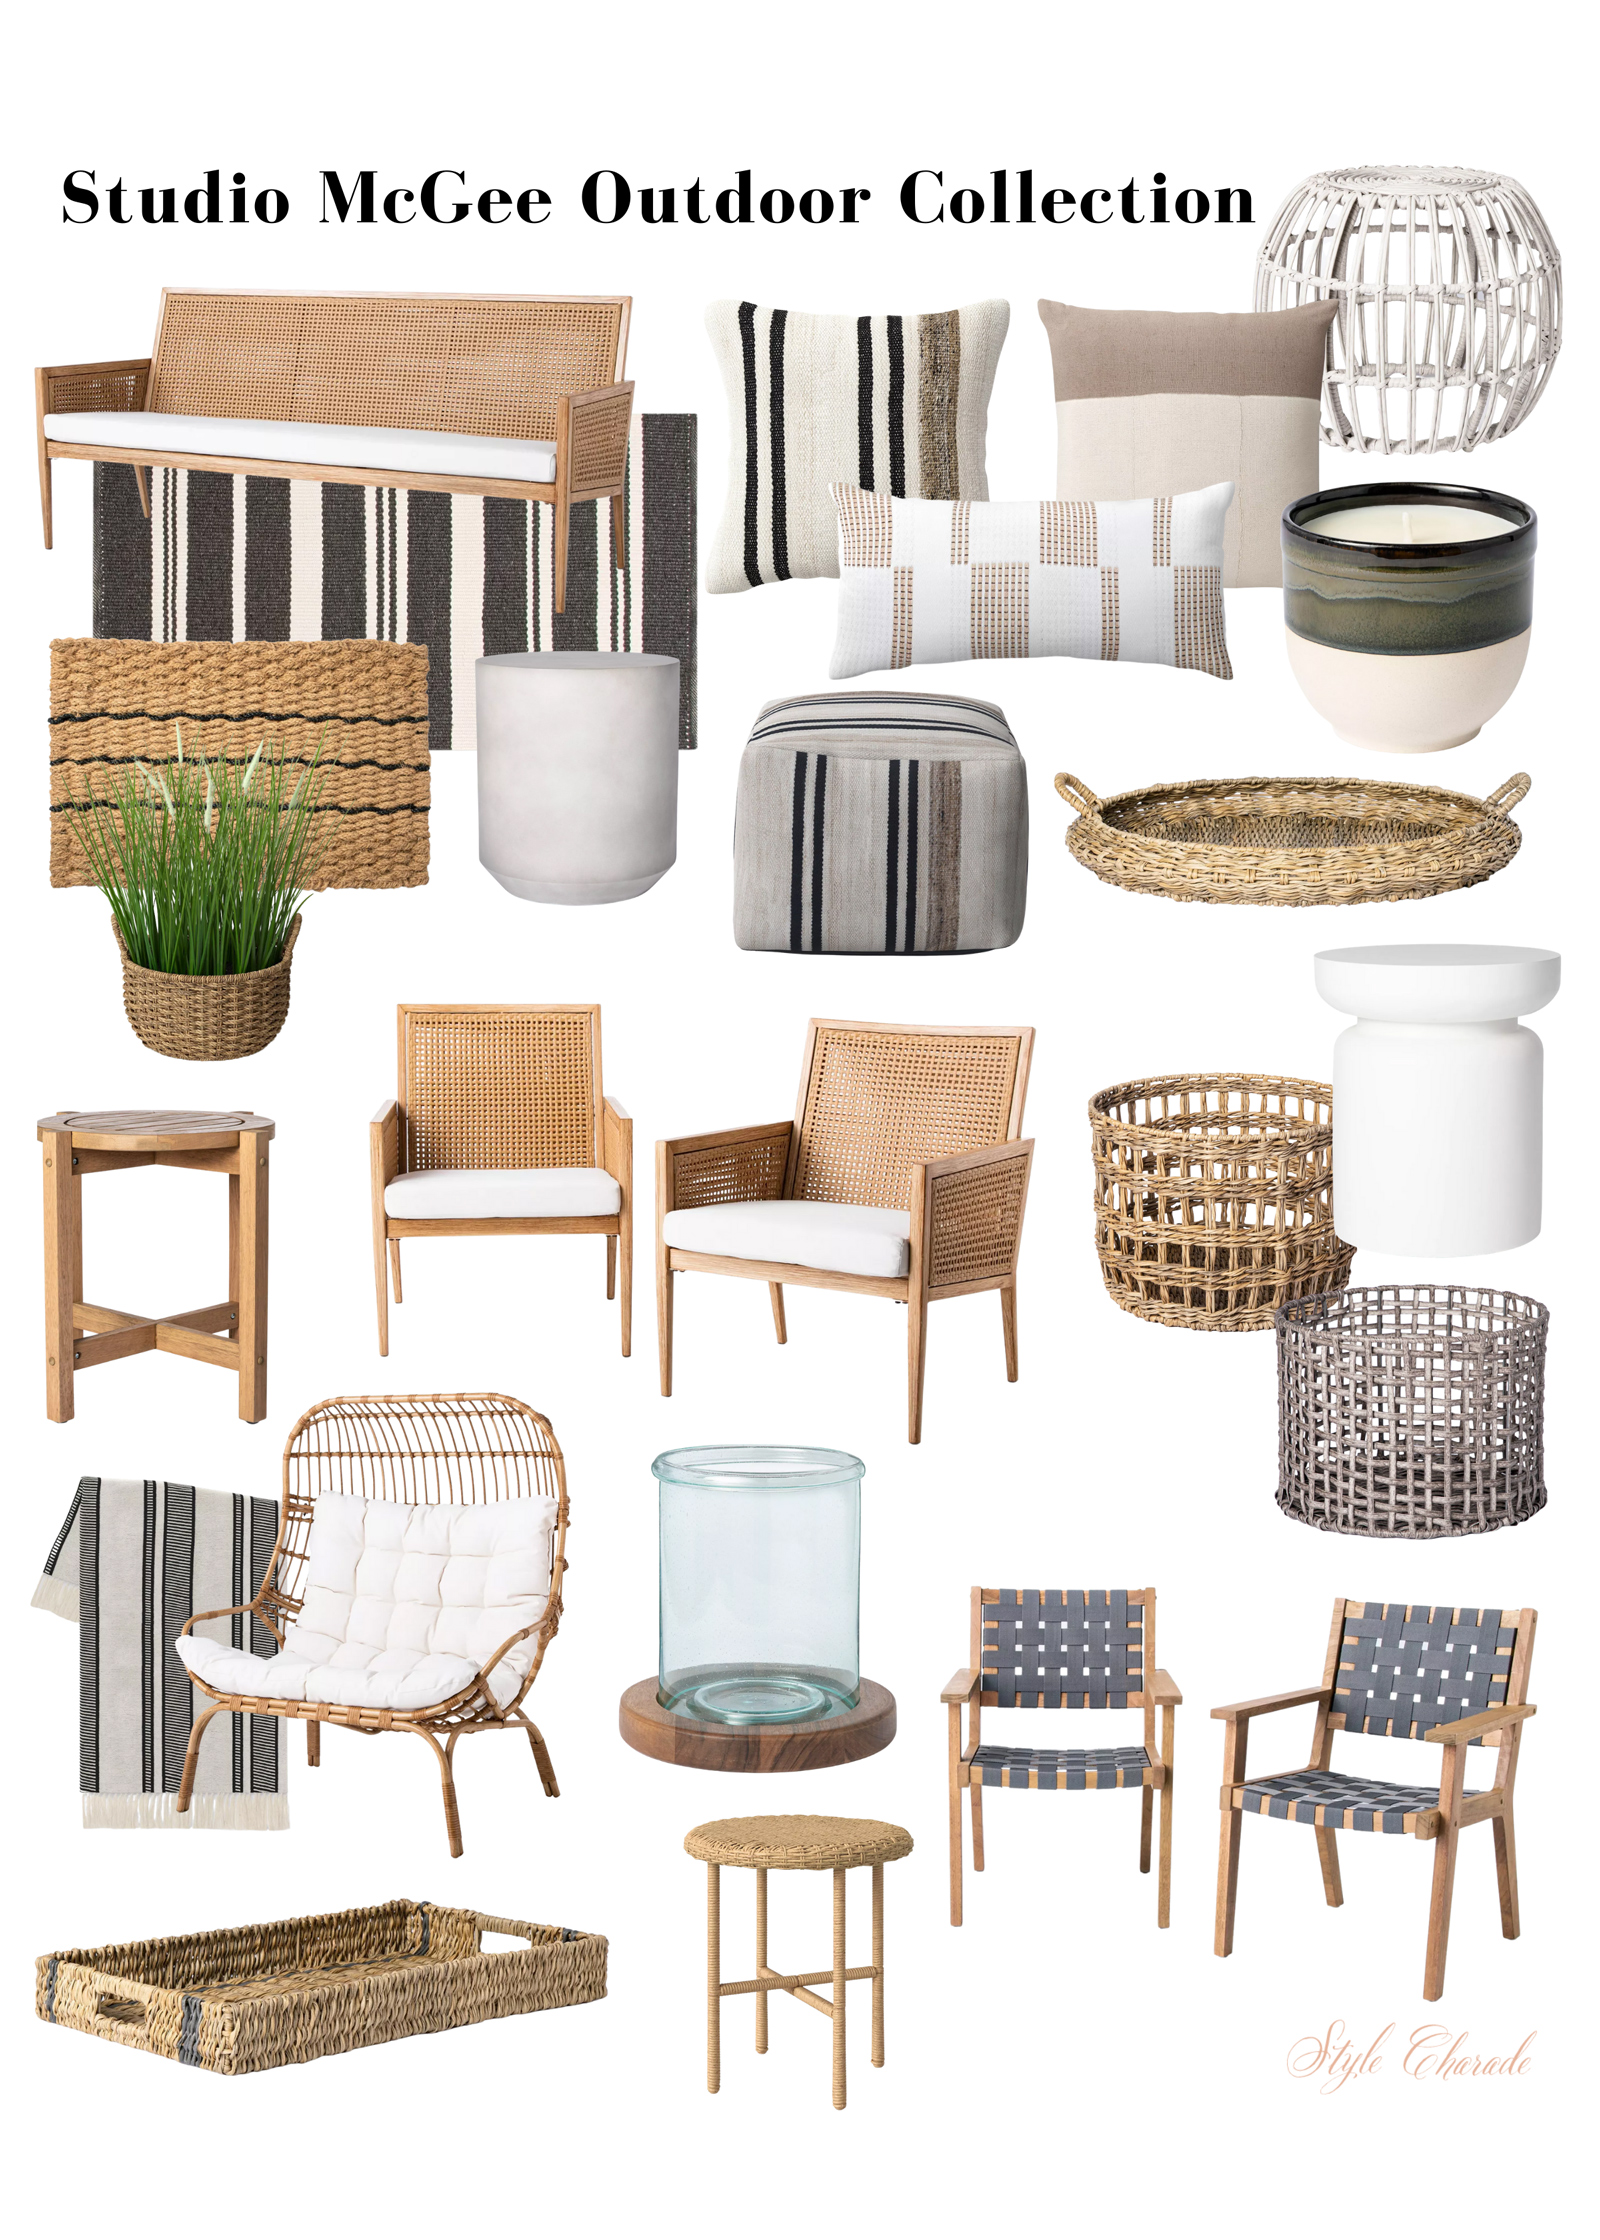 Studio McGee Outdoor Collection